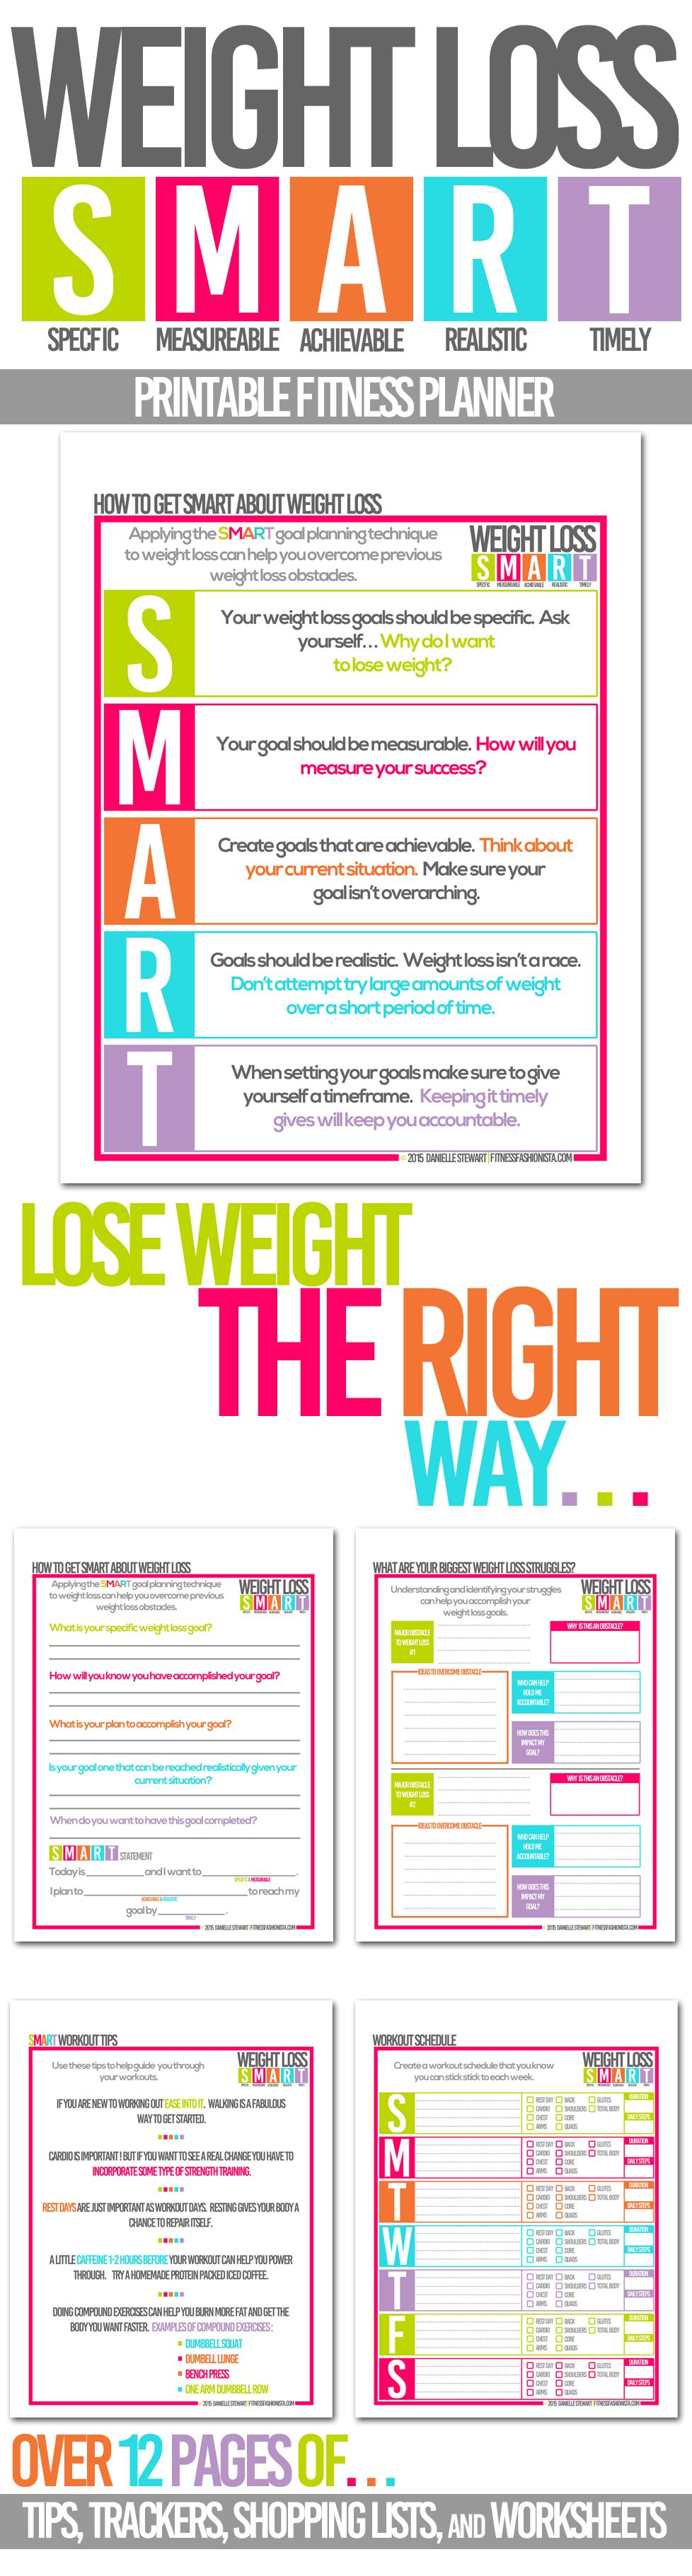 Worksheets Weight Loss Printables In Pdf free printable food journal fitness pinterest weight loss downloadable planner for only 10 00